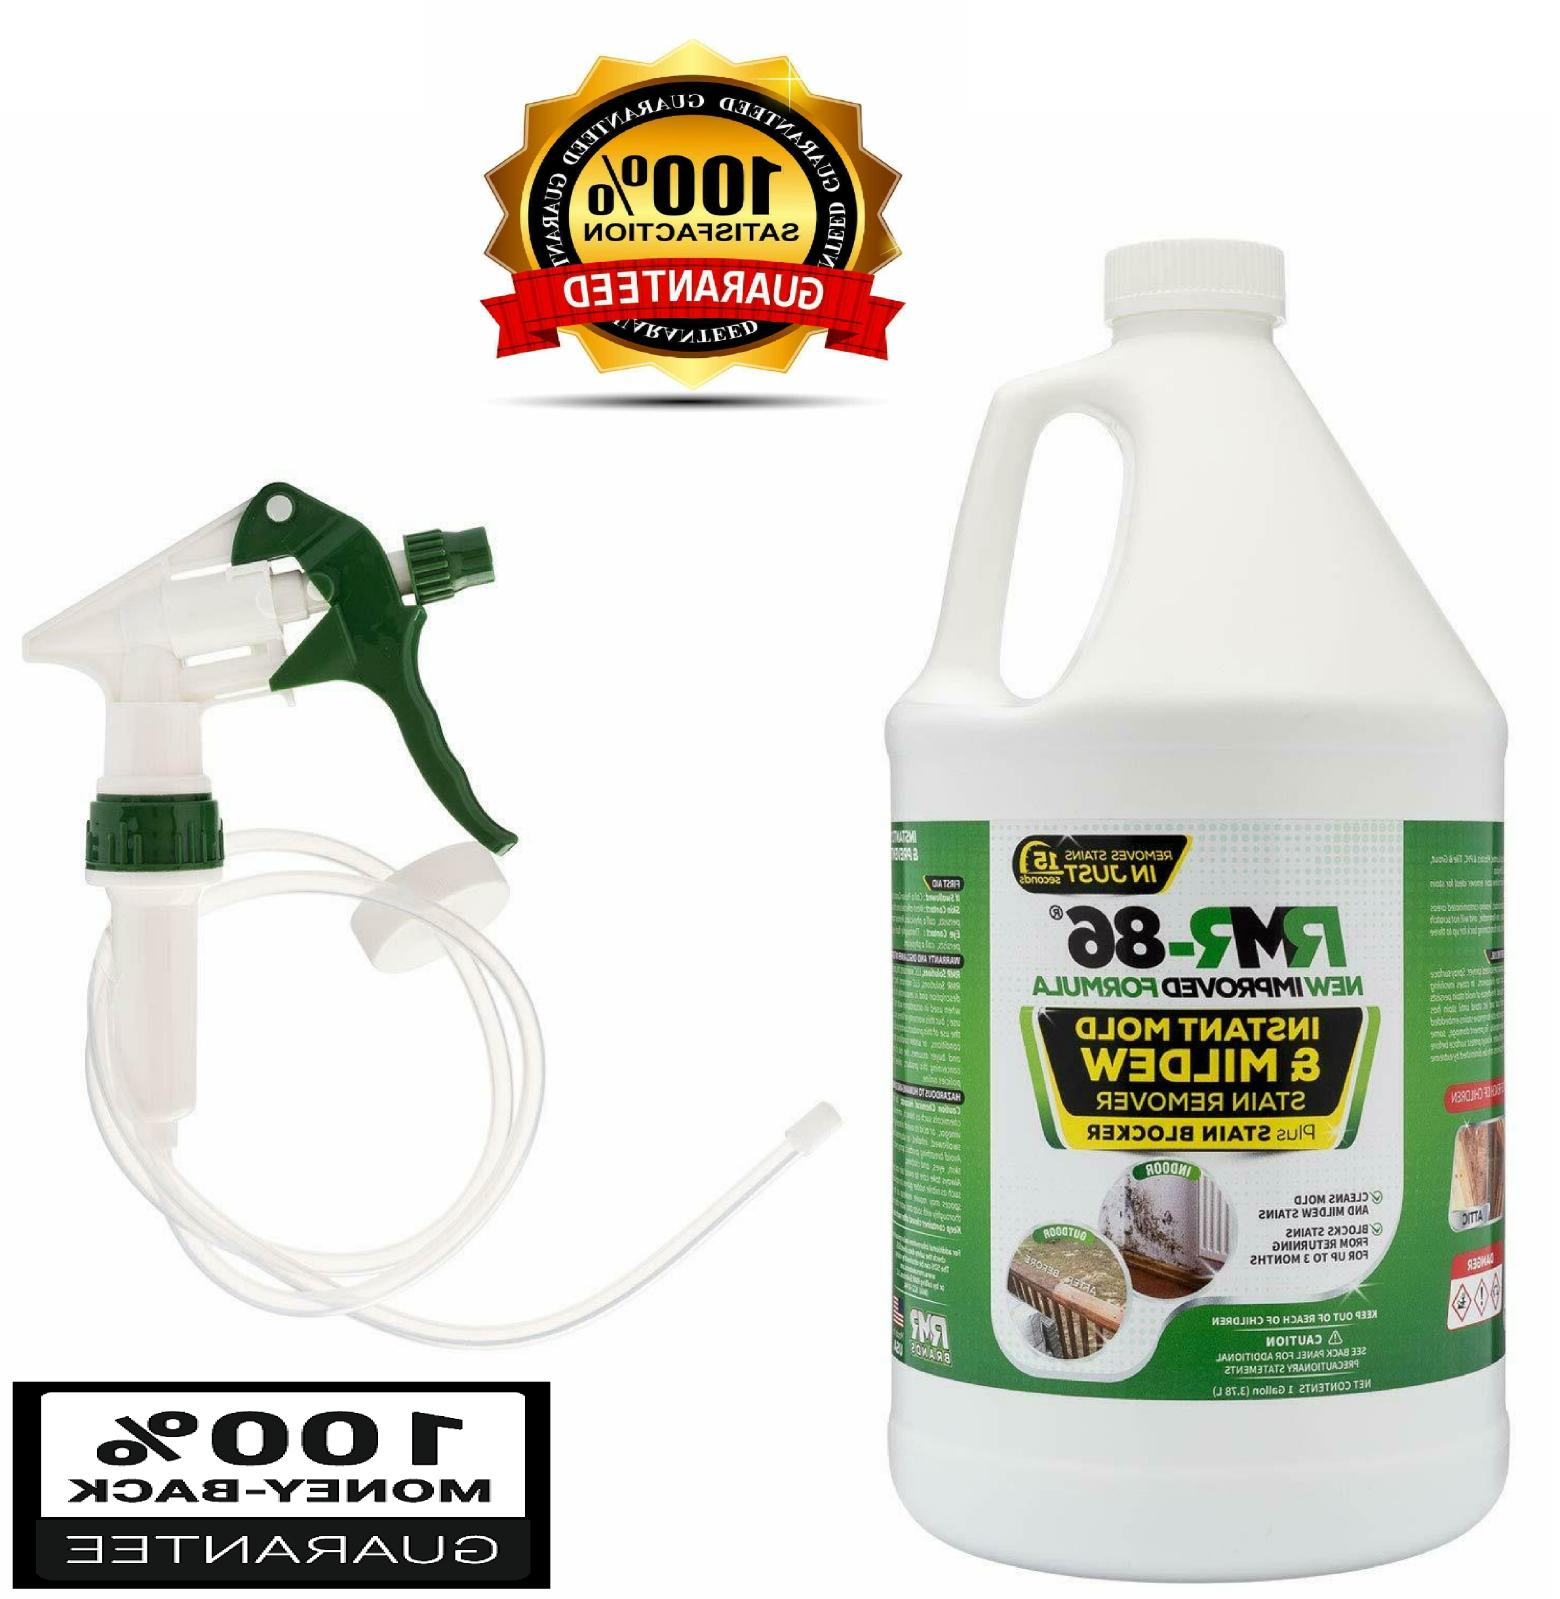 rmr 86 instant mold stain